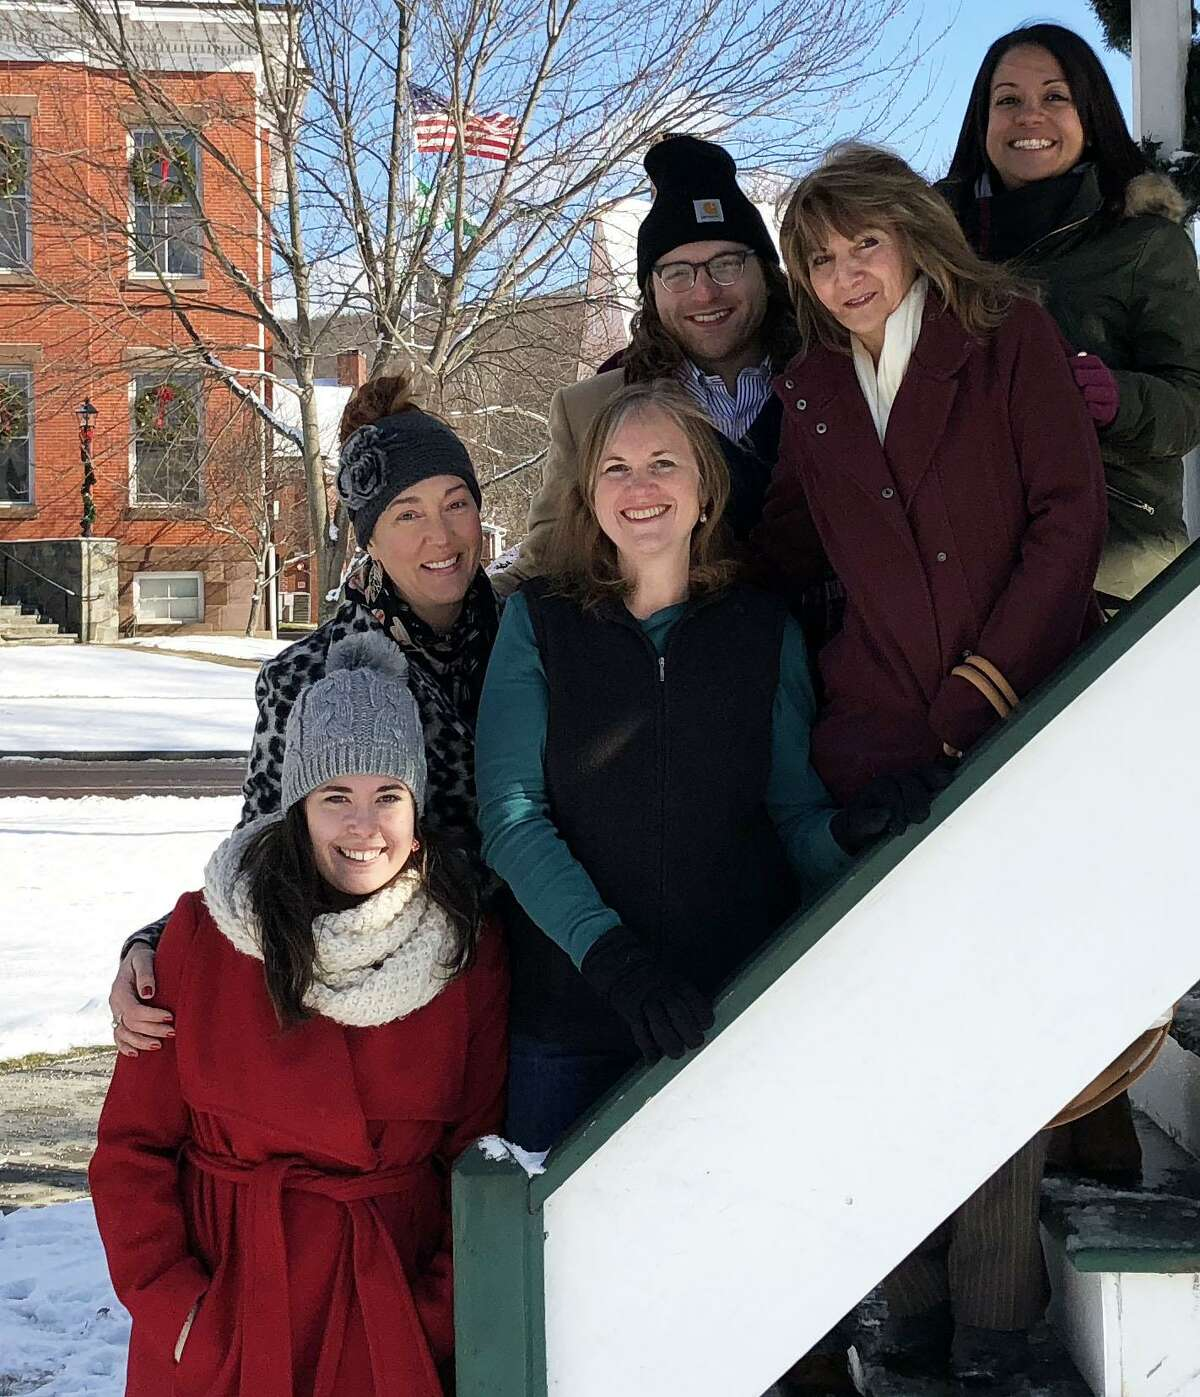 The staff of the Greater New Milford Spectrum and its sister paper, The News-Times, as well as those at Hearst Connecticut Media, wish residents of the Greater New Milford area very happy holidays and an enjoyable, healthy and fulfilling New Year. From left to right, front row, reporter Katrina Koerting, writer/photographer Deborah Rose and media consultant Frankie Caouette, and in back, photographer Trish Haldin, reporter Barry Lytton and Spectrum/News-Times Assistant Managing Editor Keila Torres Ocasio.